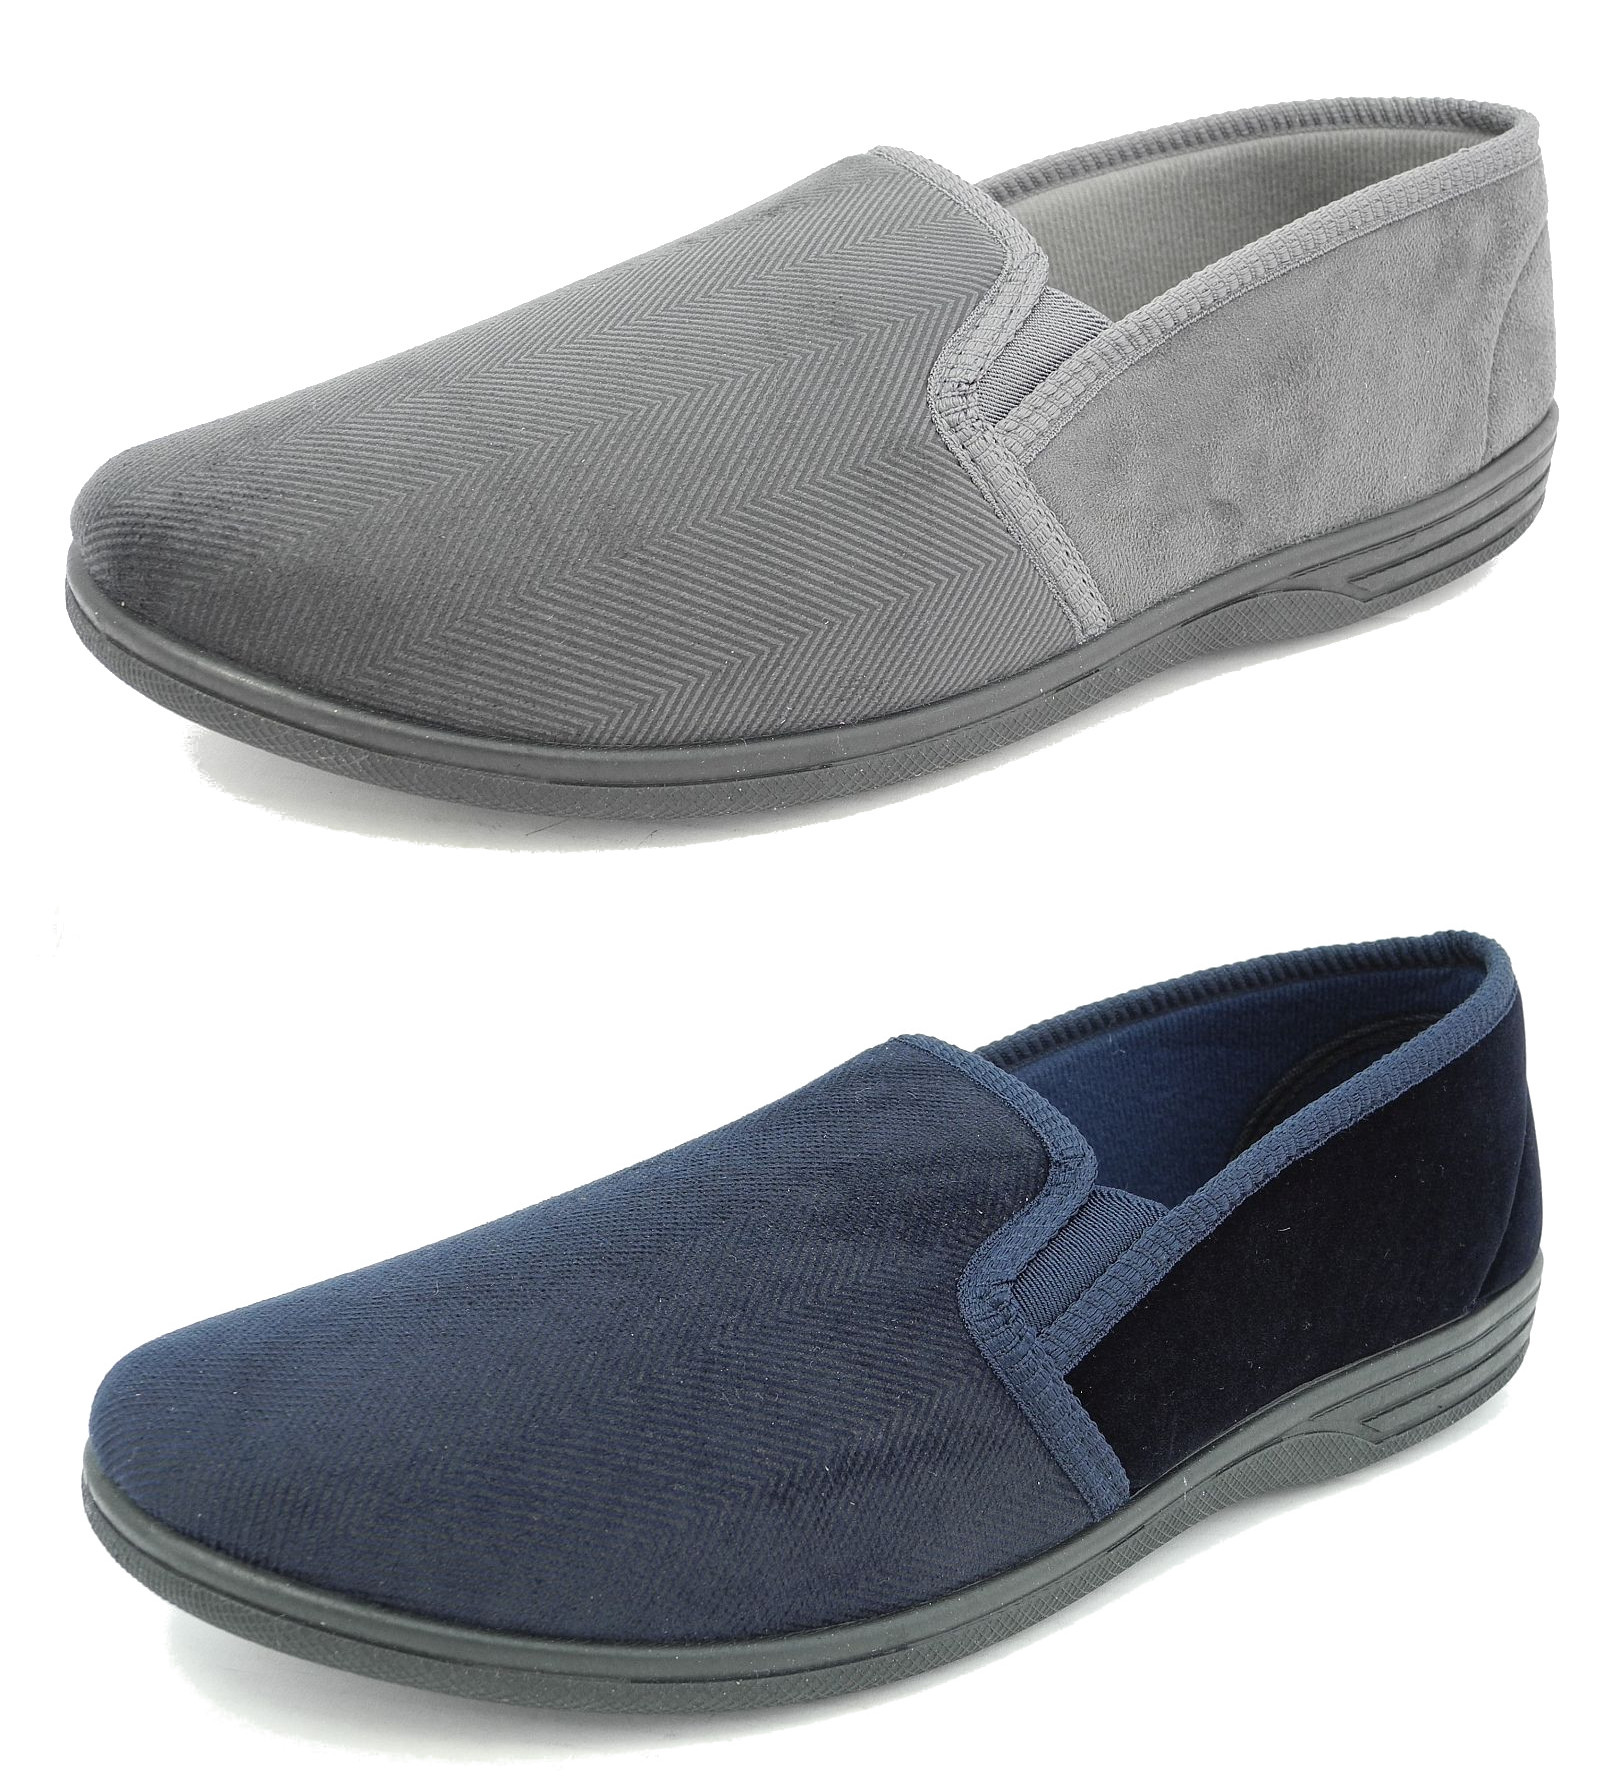 results for size 14 slippers Save size 14 slippers to get e-mail alerts and updates on your eBay Feed. Unfollow size 14 slippers to stop getting updates on your eBay feed.